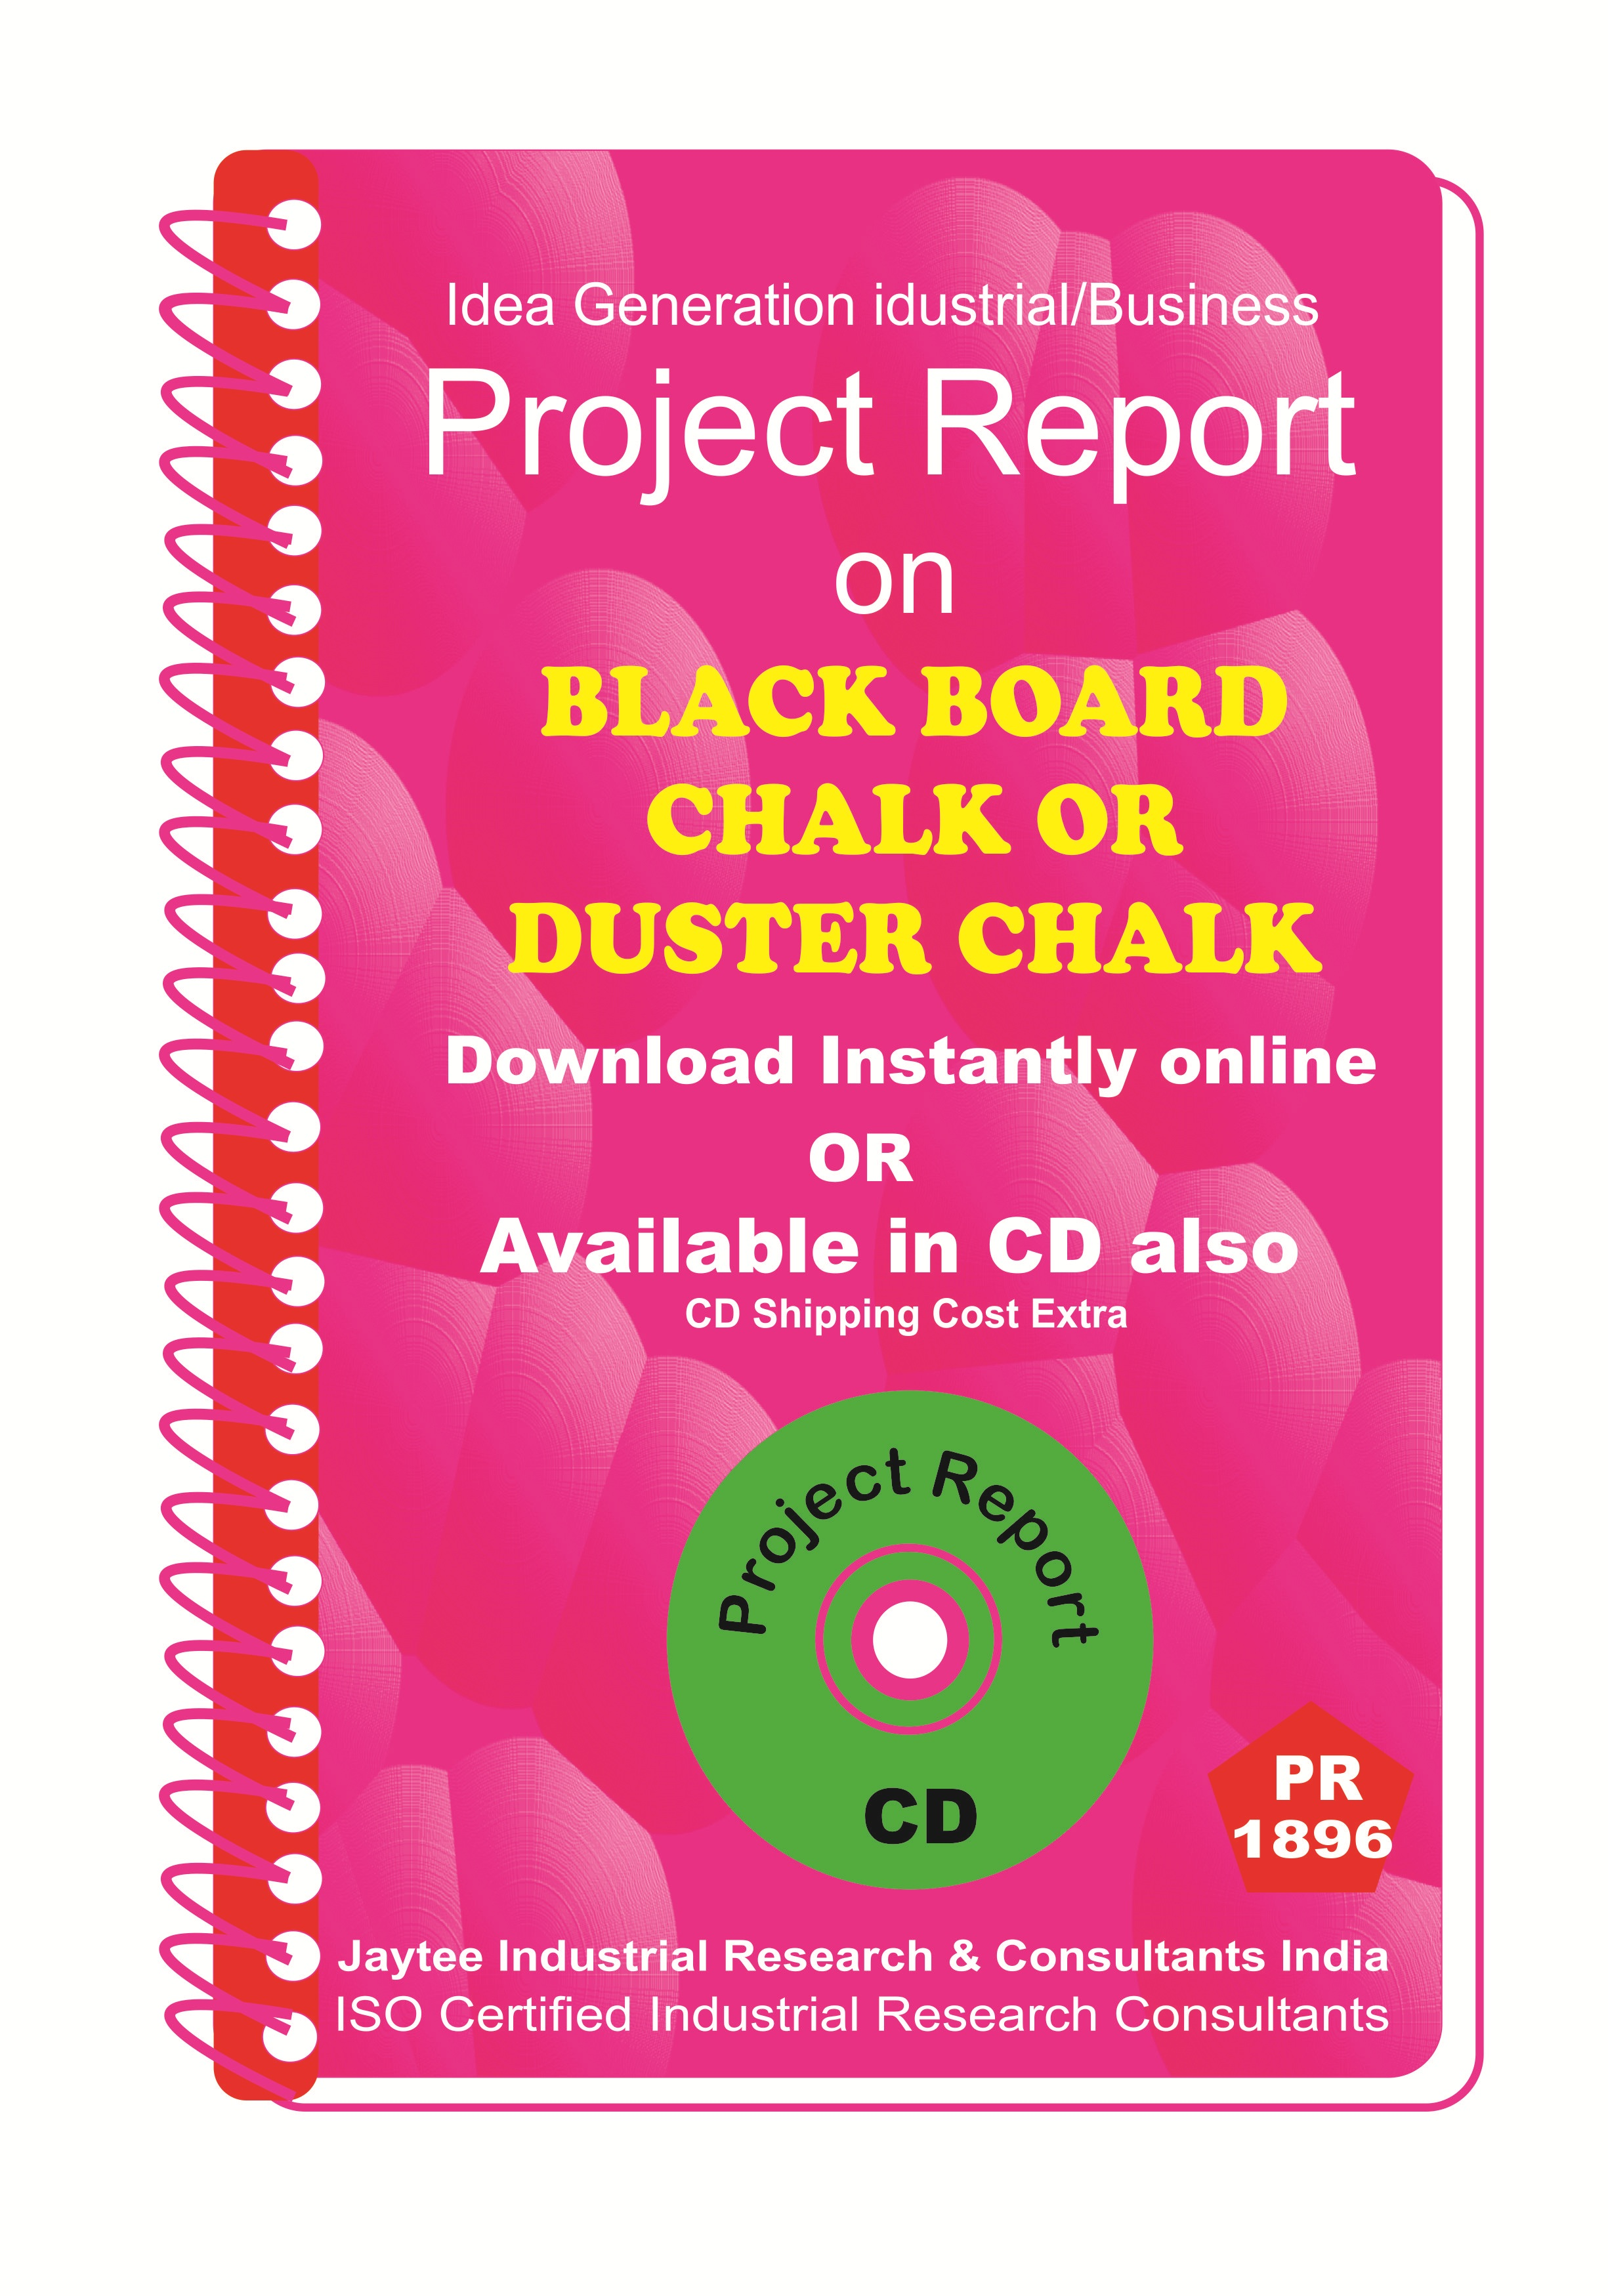 miscelleneous project reports indias best industrial project and